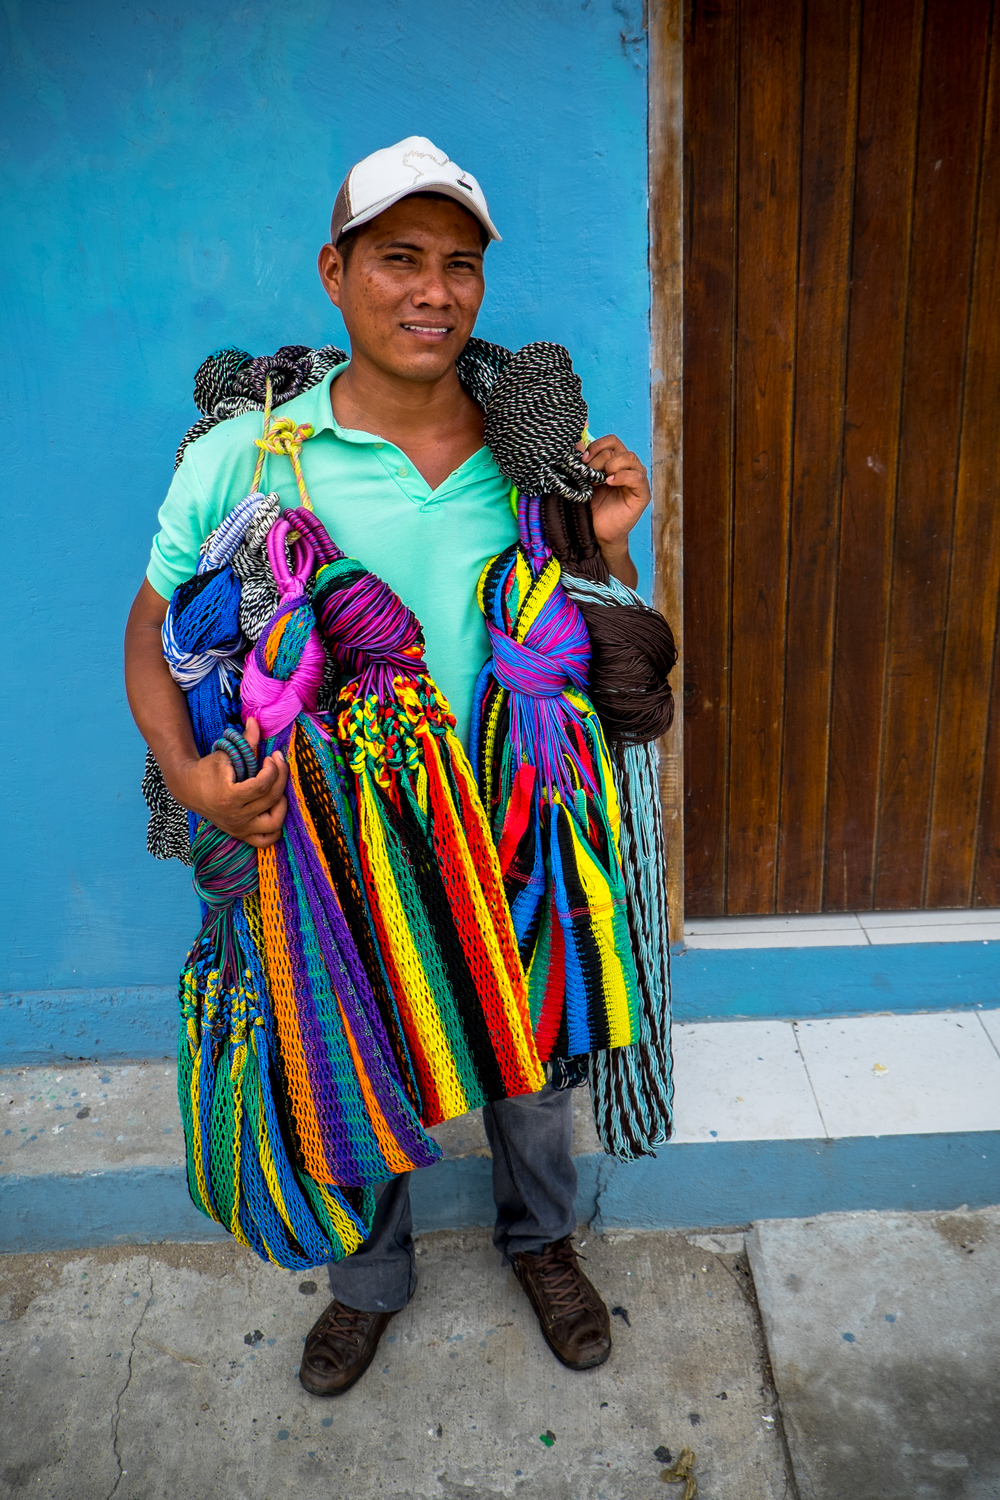 """Vendo Hamaca's"" Gabriel sells Hammocks on the street usually made out of silk or cotton. © Jorge Villarreal"